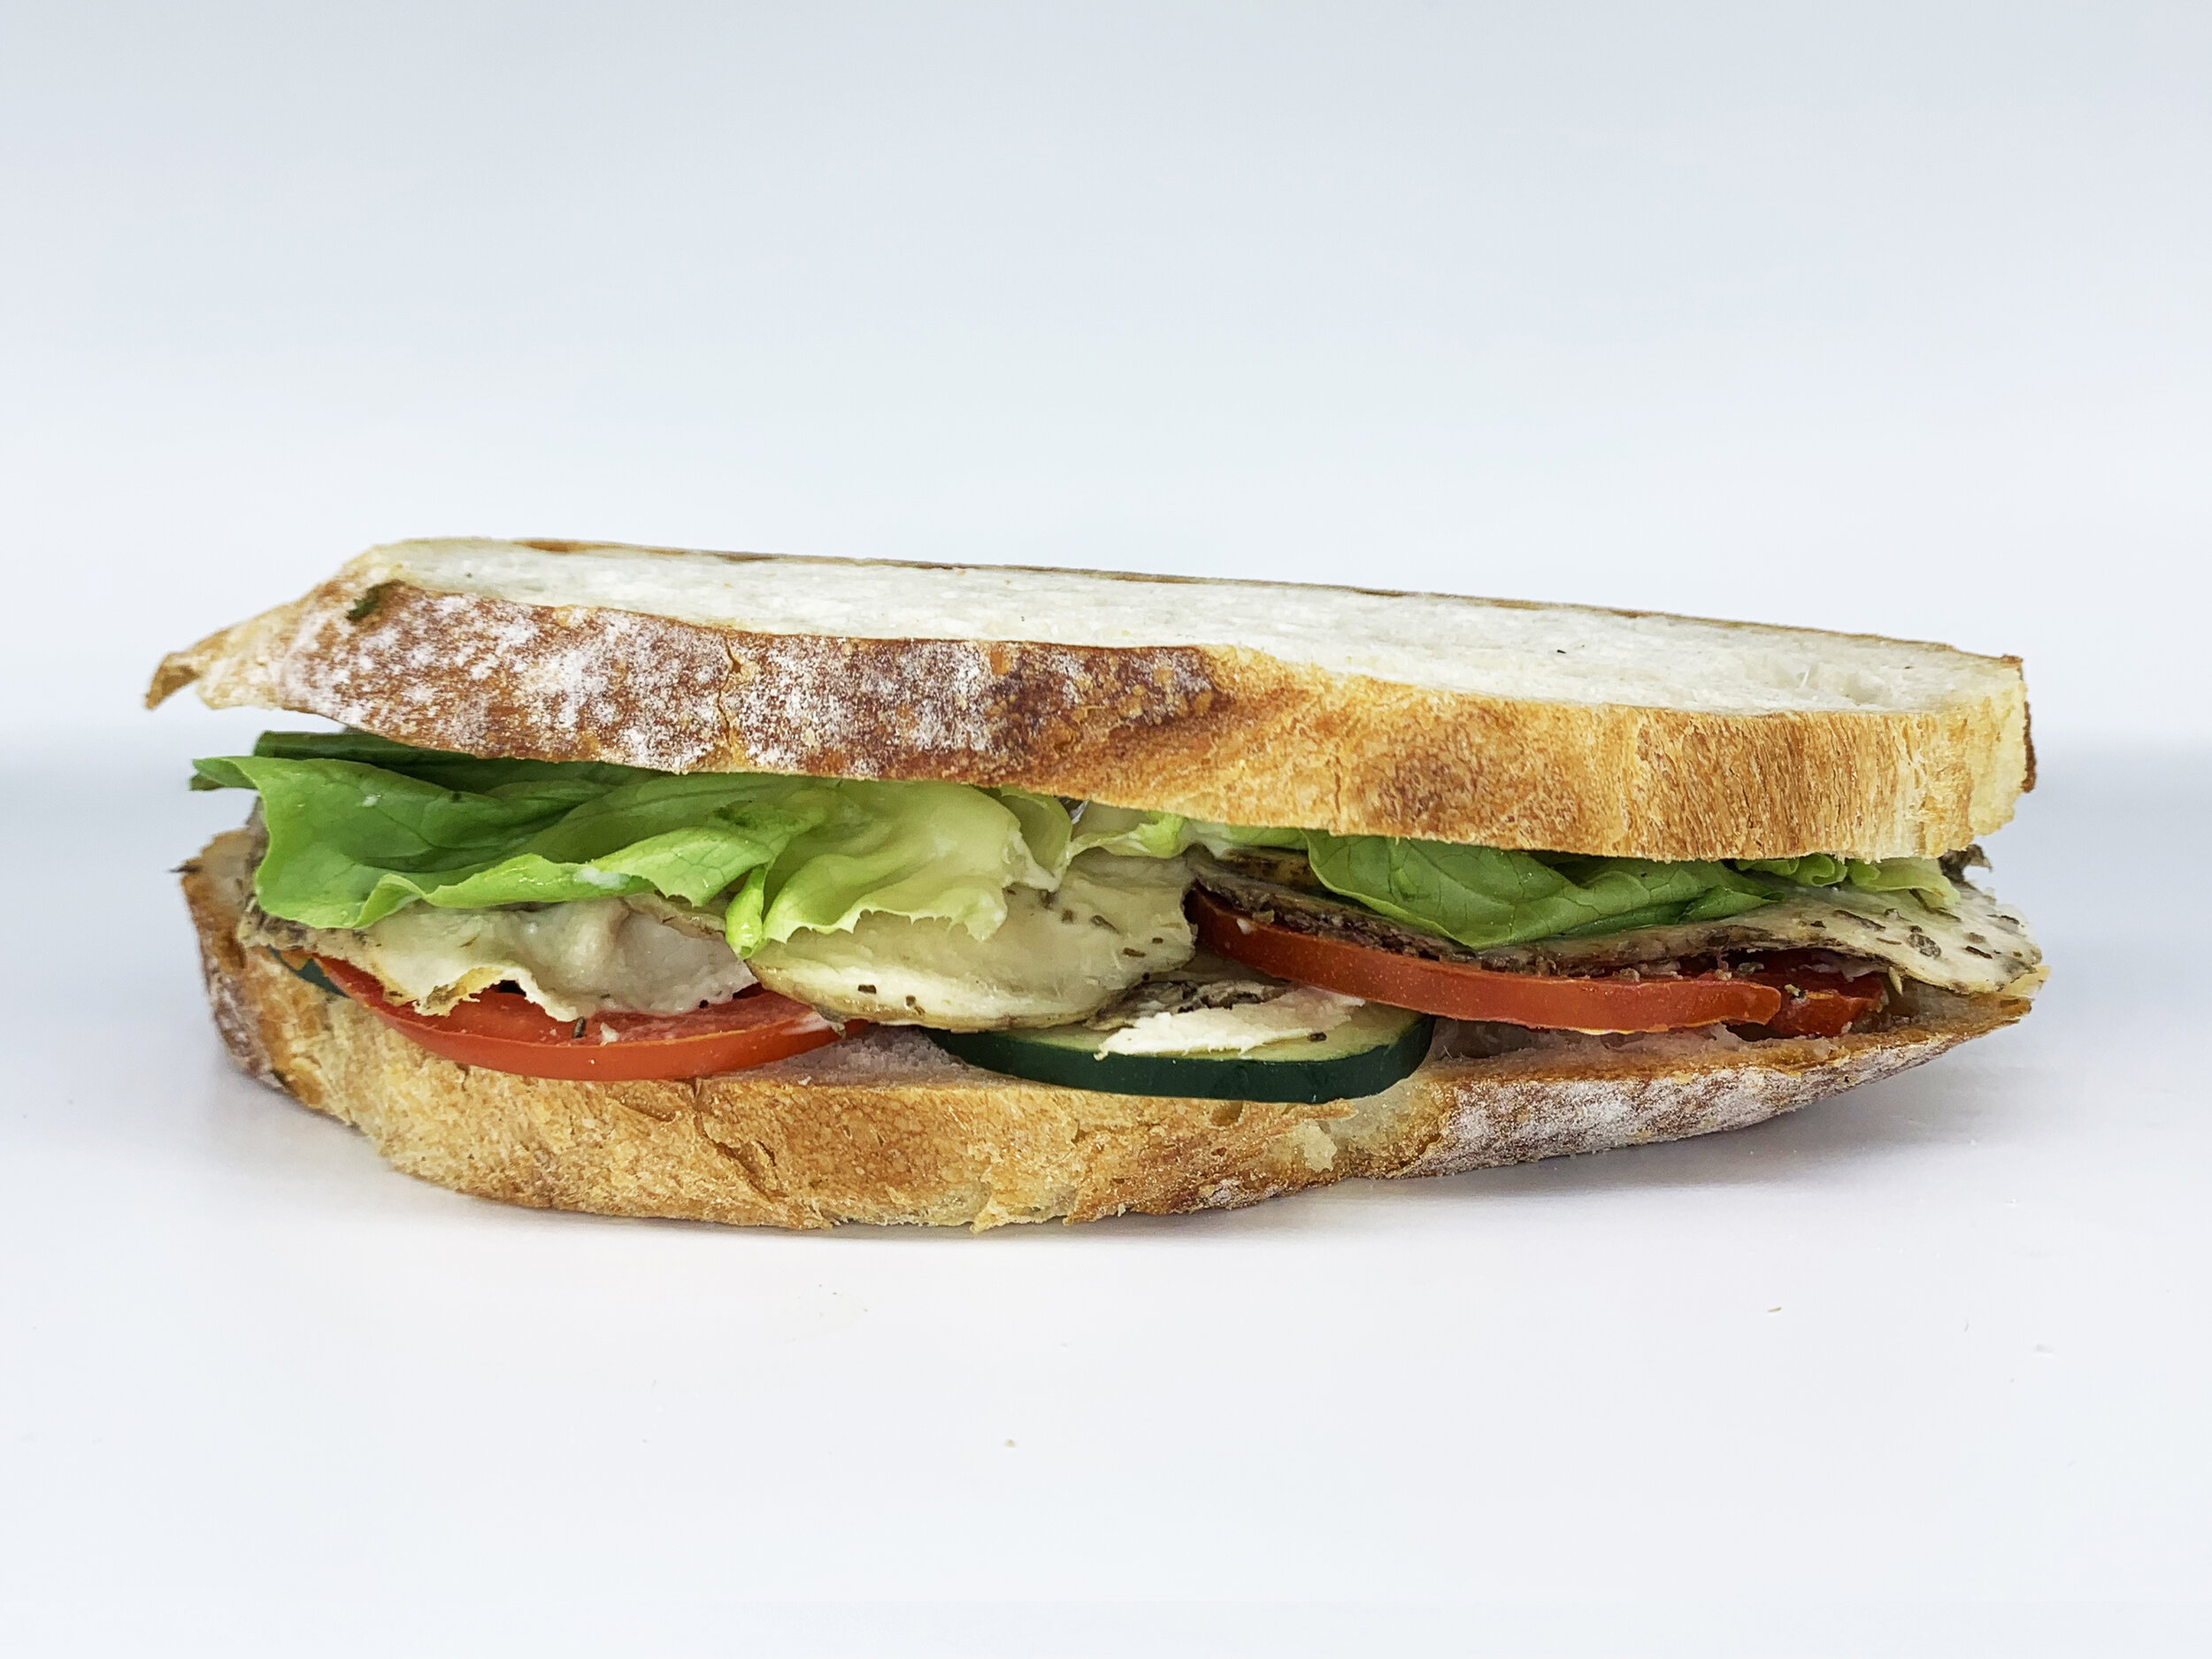 CHICKEN SOURDOUGH - 404.87 KCAL PER SERVINGChicken breast, tomato, cucumber, butter lettuce, 12 Noon caesar dressing, sourdough bread$32